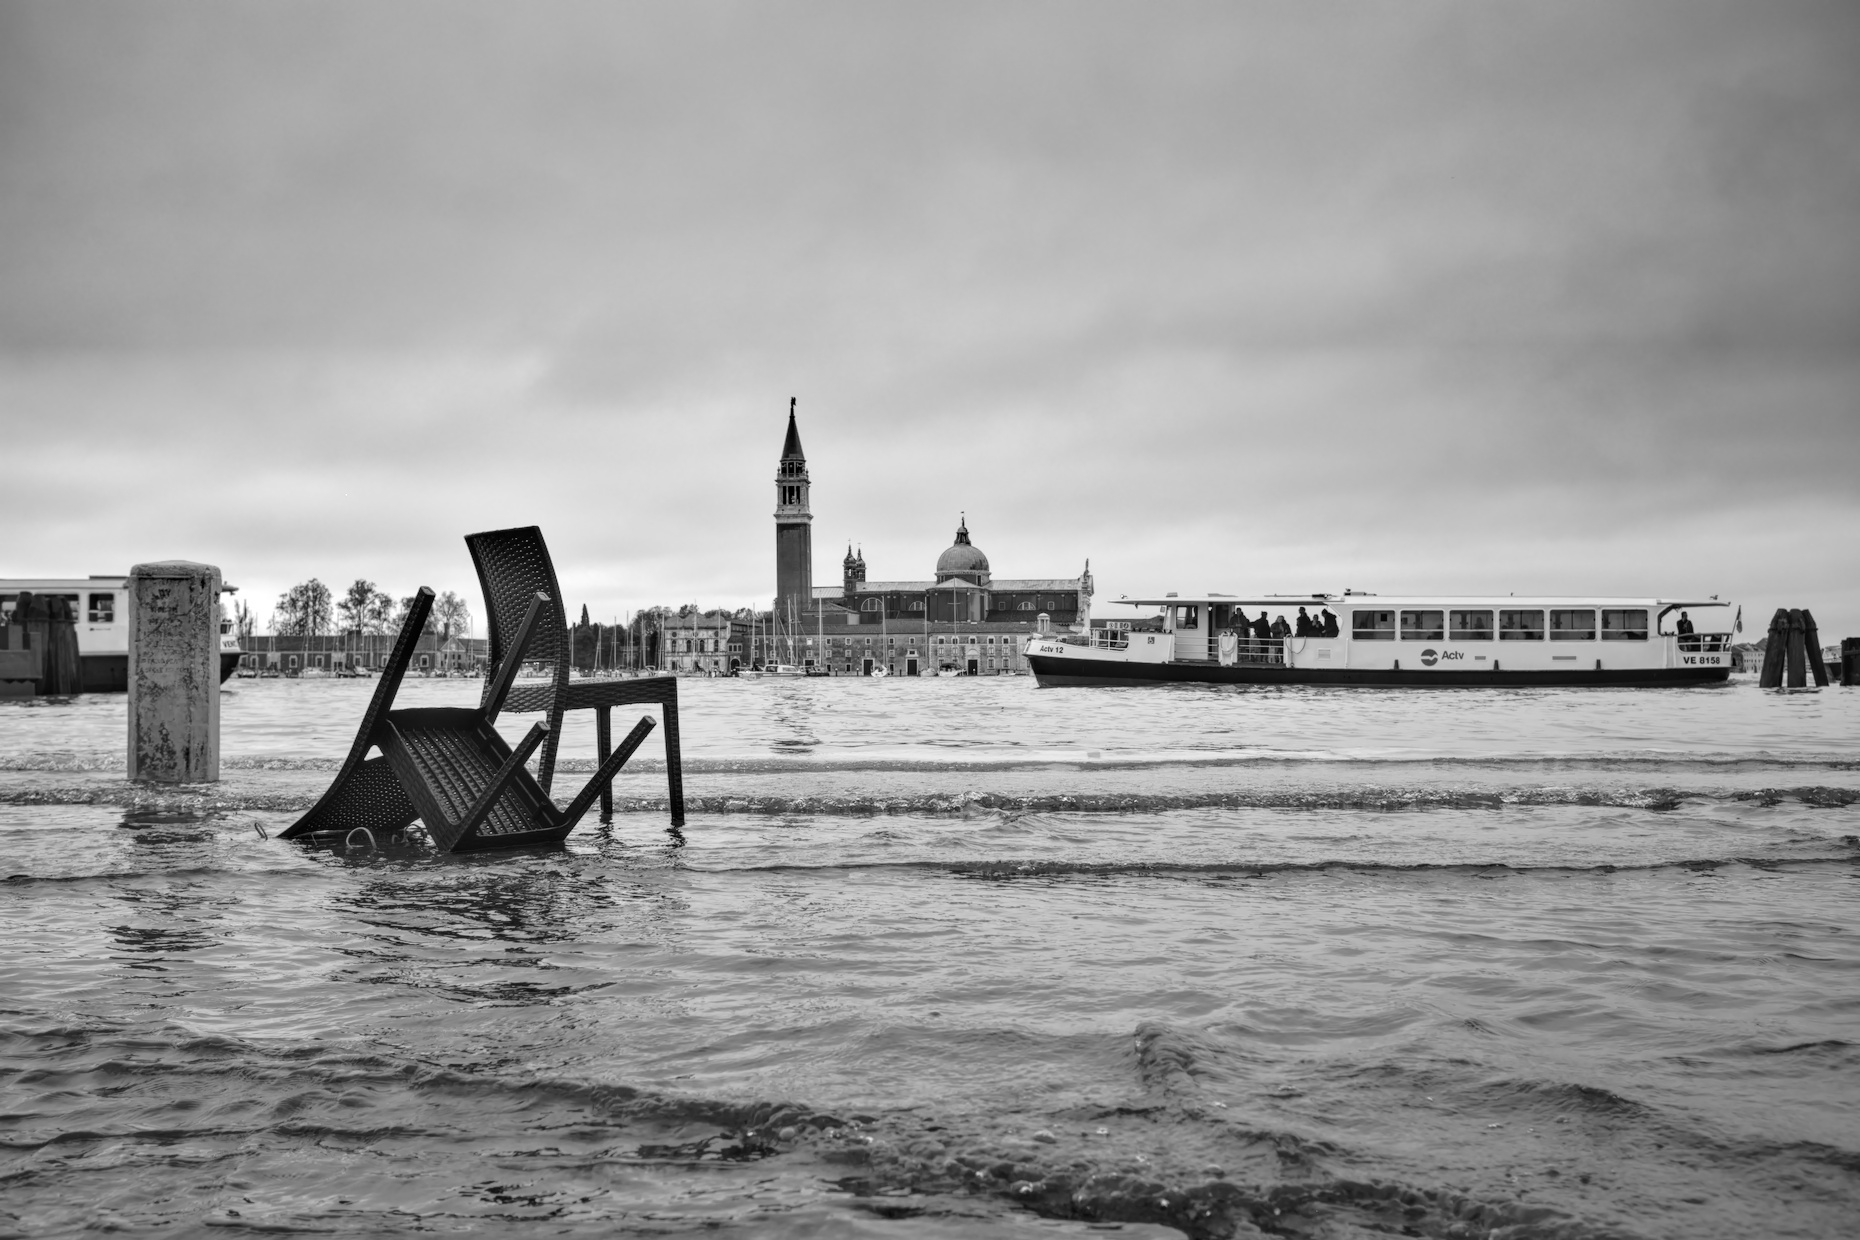 High tide in Venice - abandoned furniture